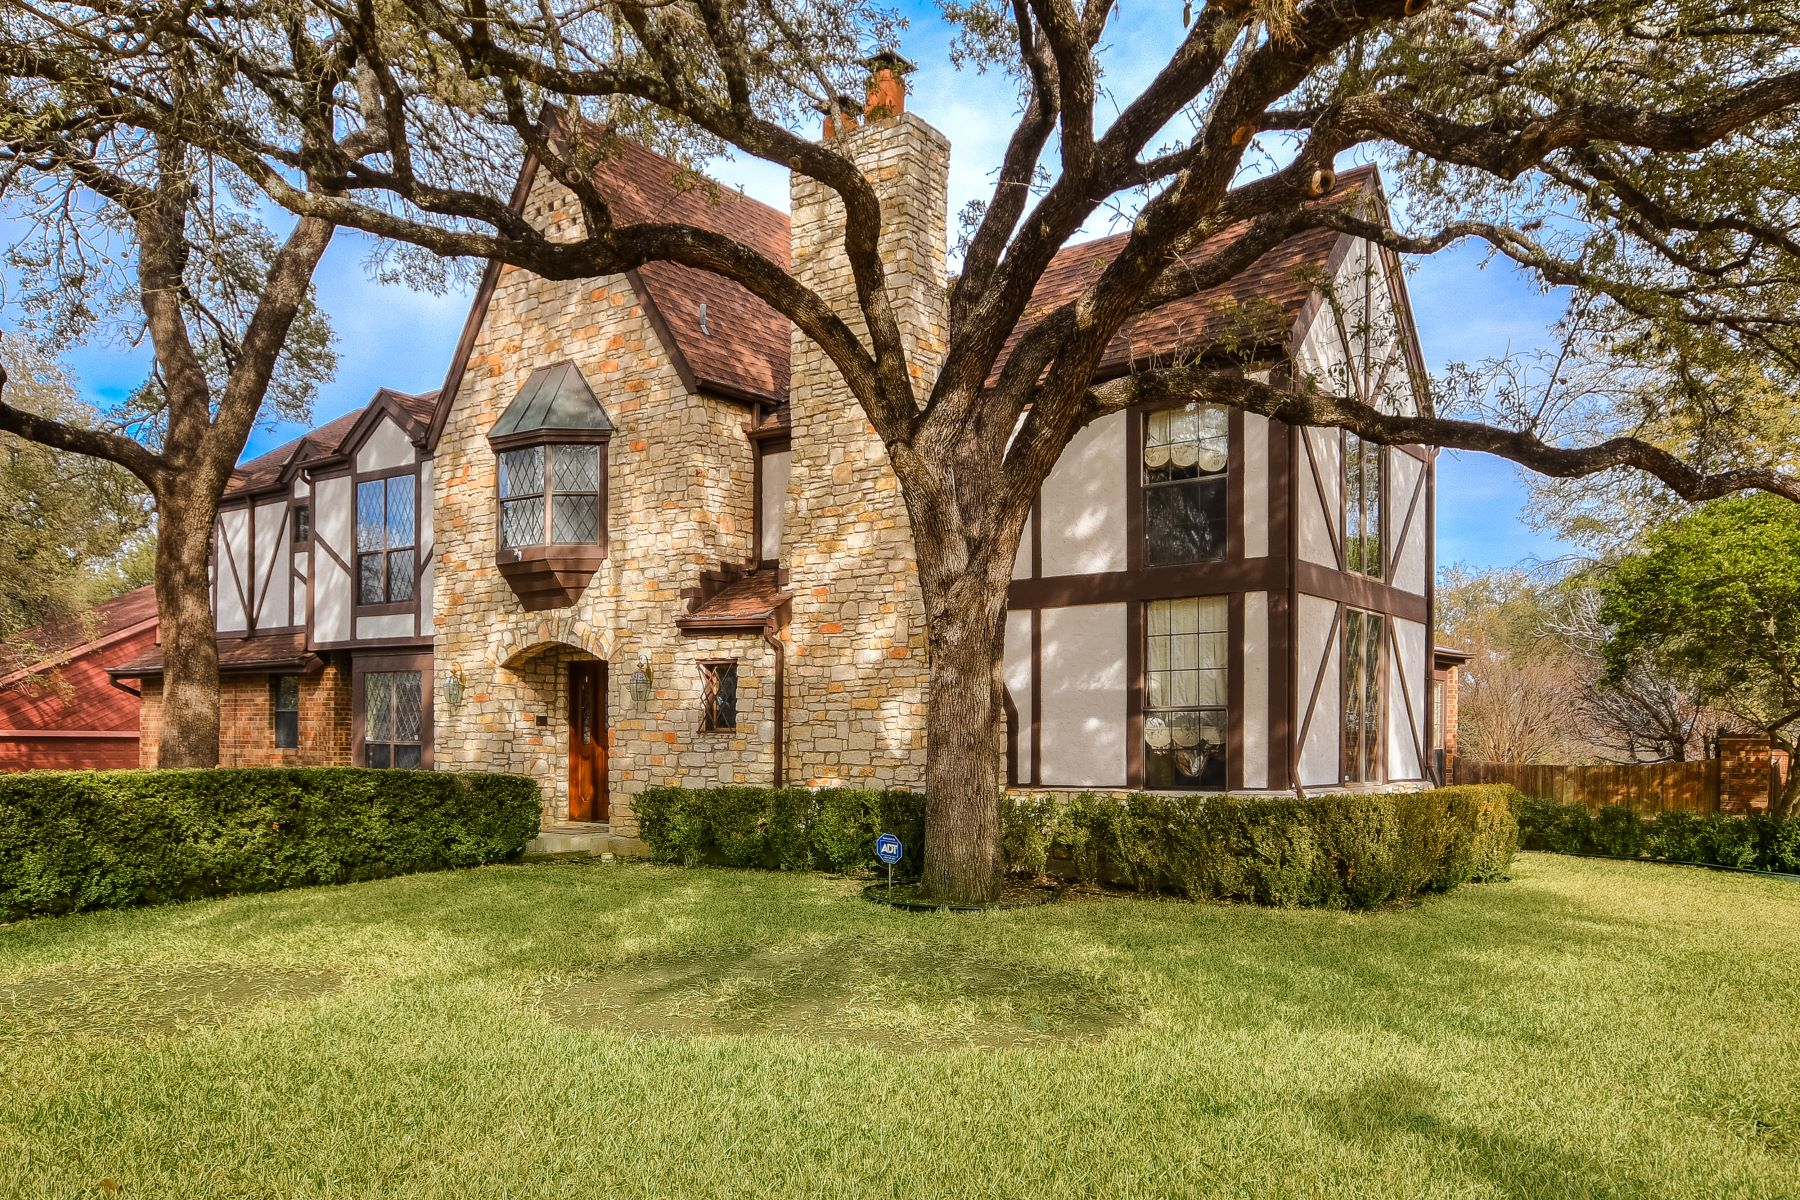 Single Family Home for Sale at Great Family Home in Eanes ISD 1215 Wilderness Drive Austin, Texas 78746 United States